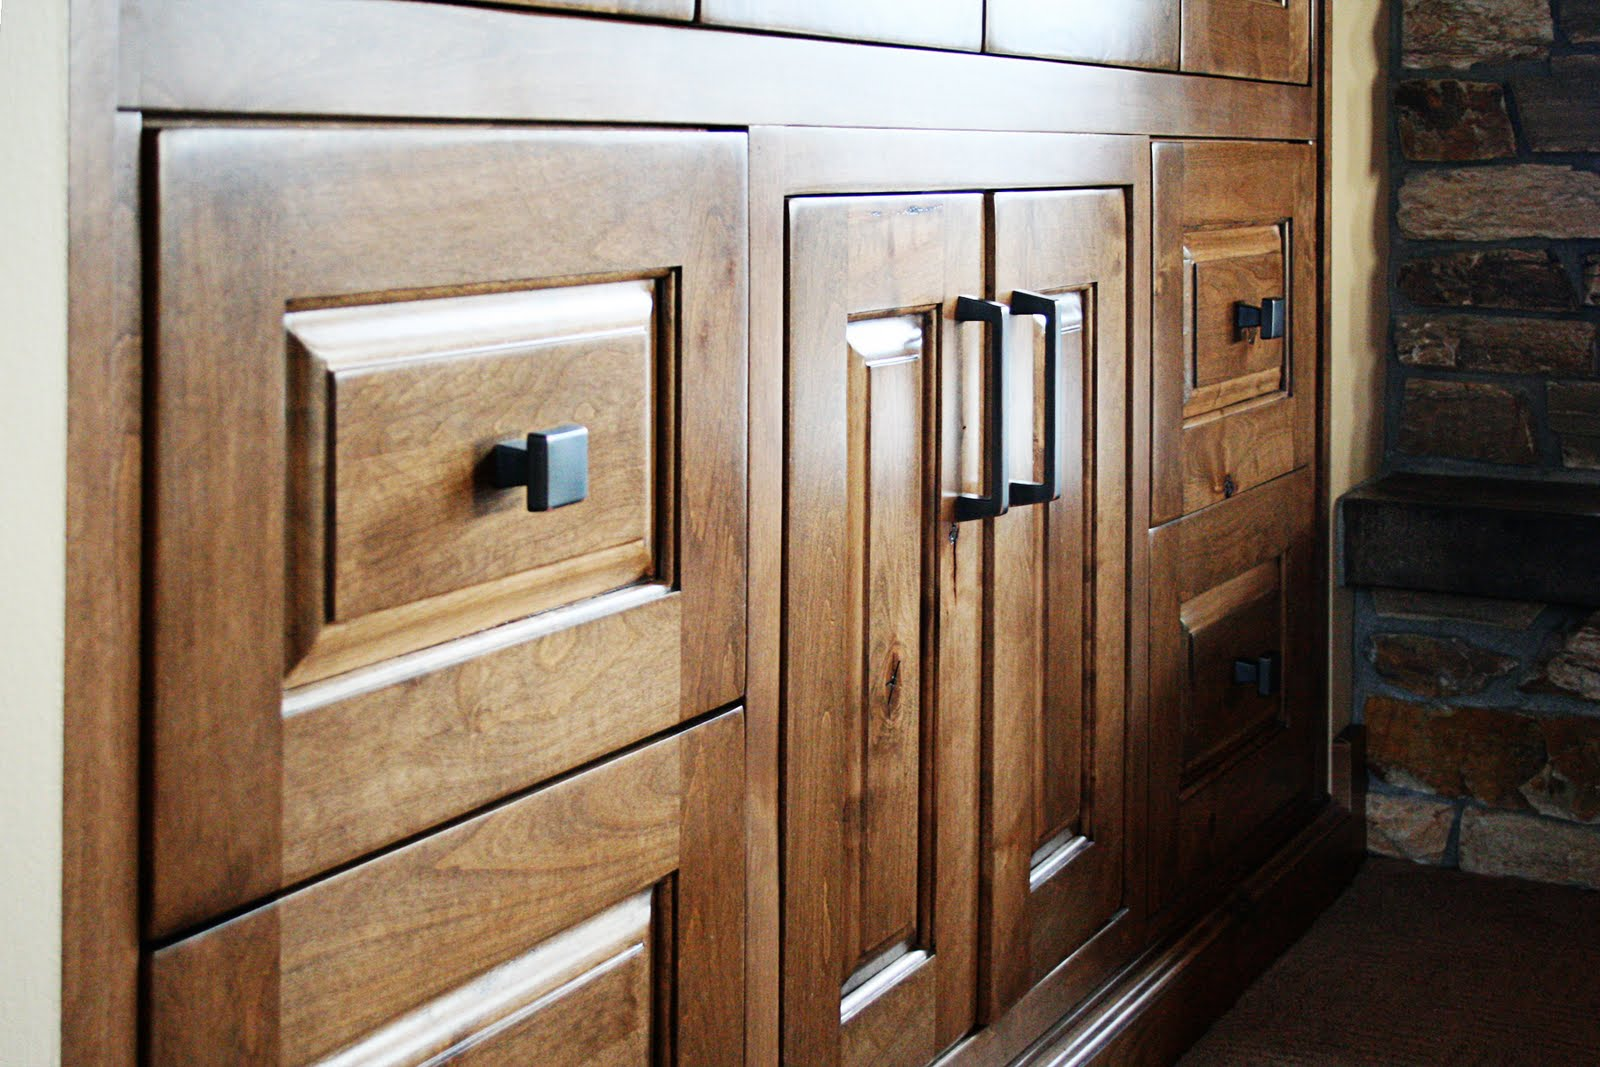 Quality custom cabinets furniture and woodwork - We Are Happy To Ship Our Cabinets To Areas Outside This Region As Well Our Goal Is To Provide High Quality Custom Cabinets To You Wherever You Are